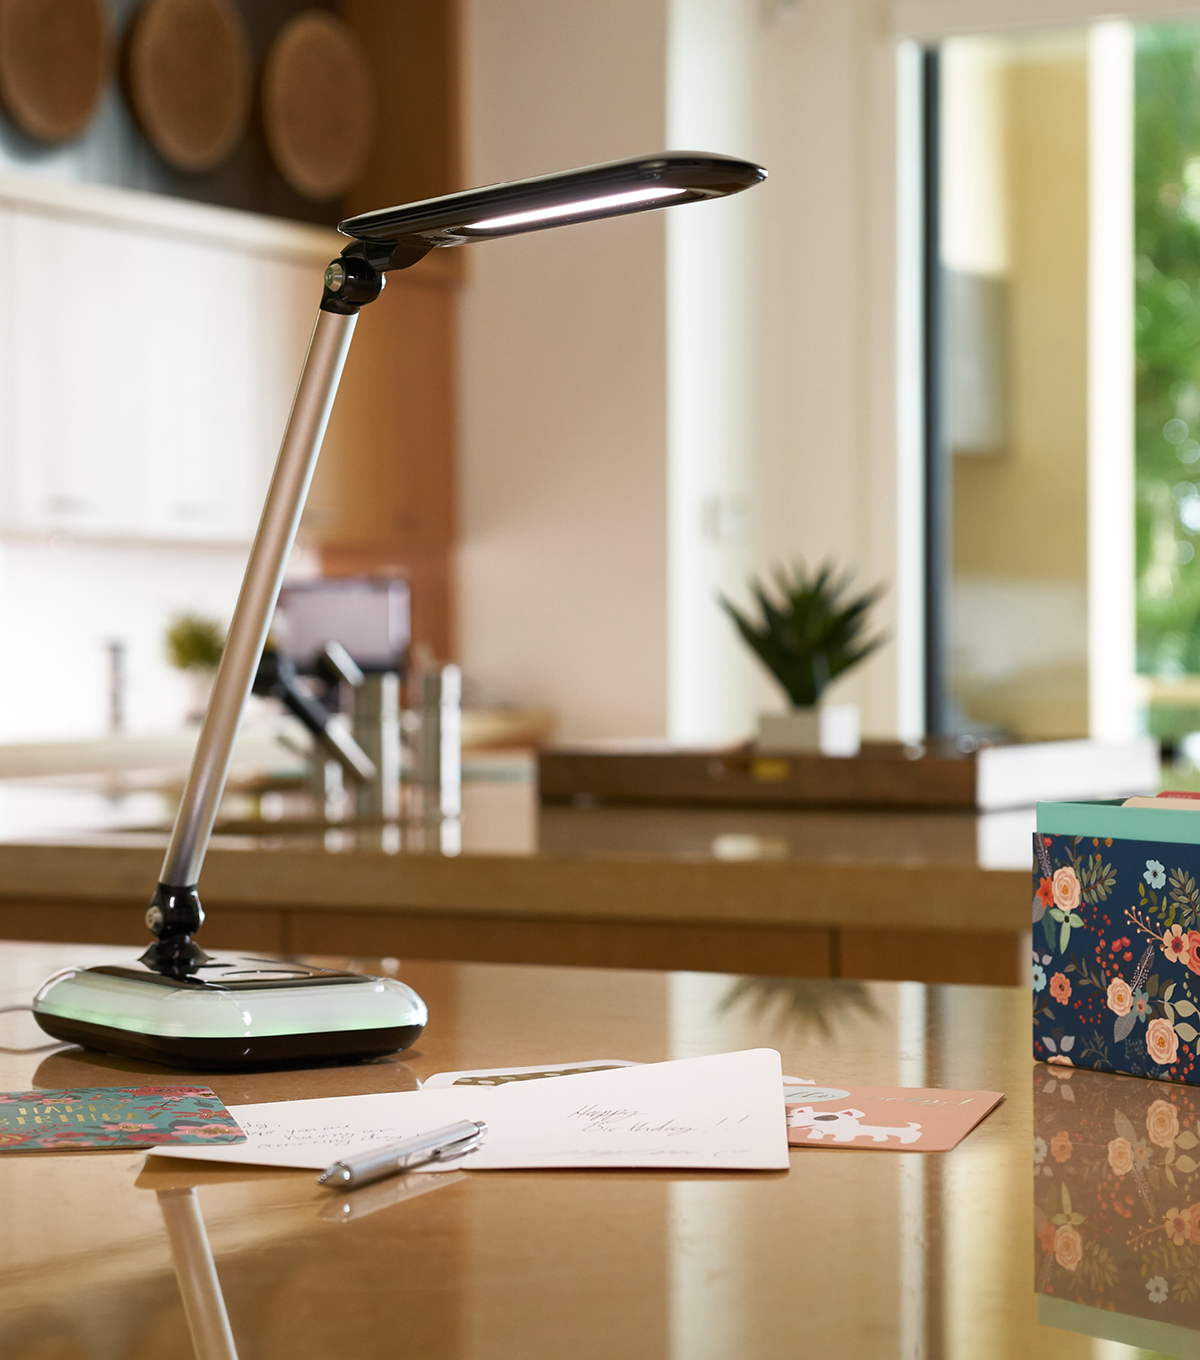 OttLite Wellness Glow LED Desk Lamp with Color Changing Base